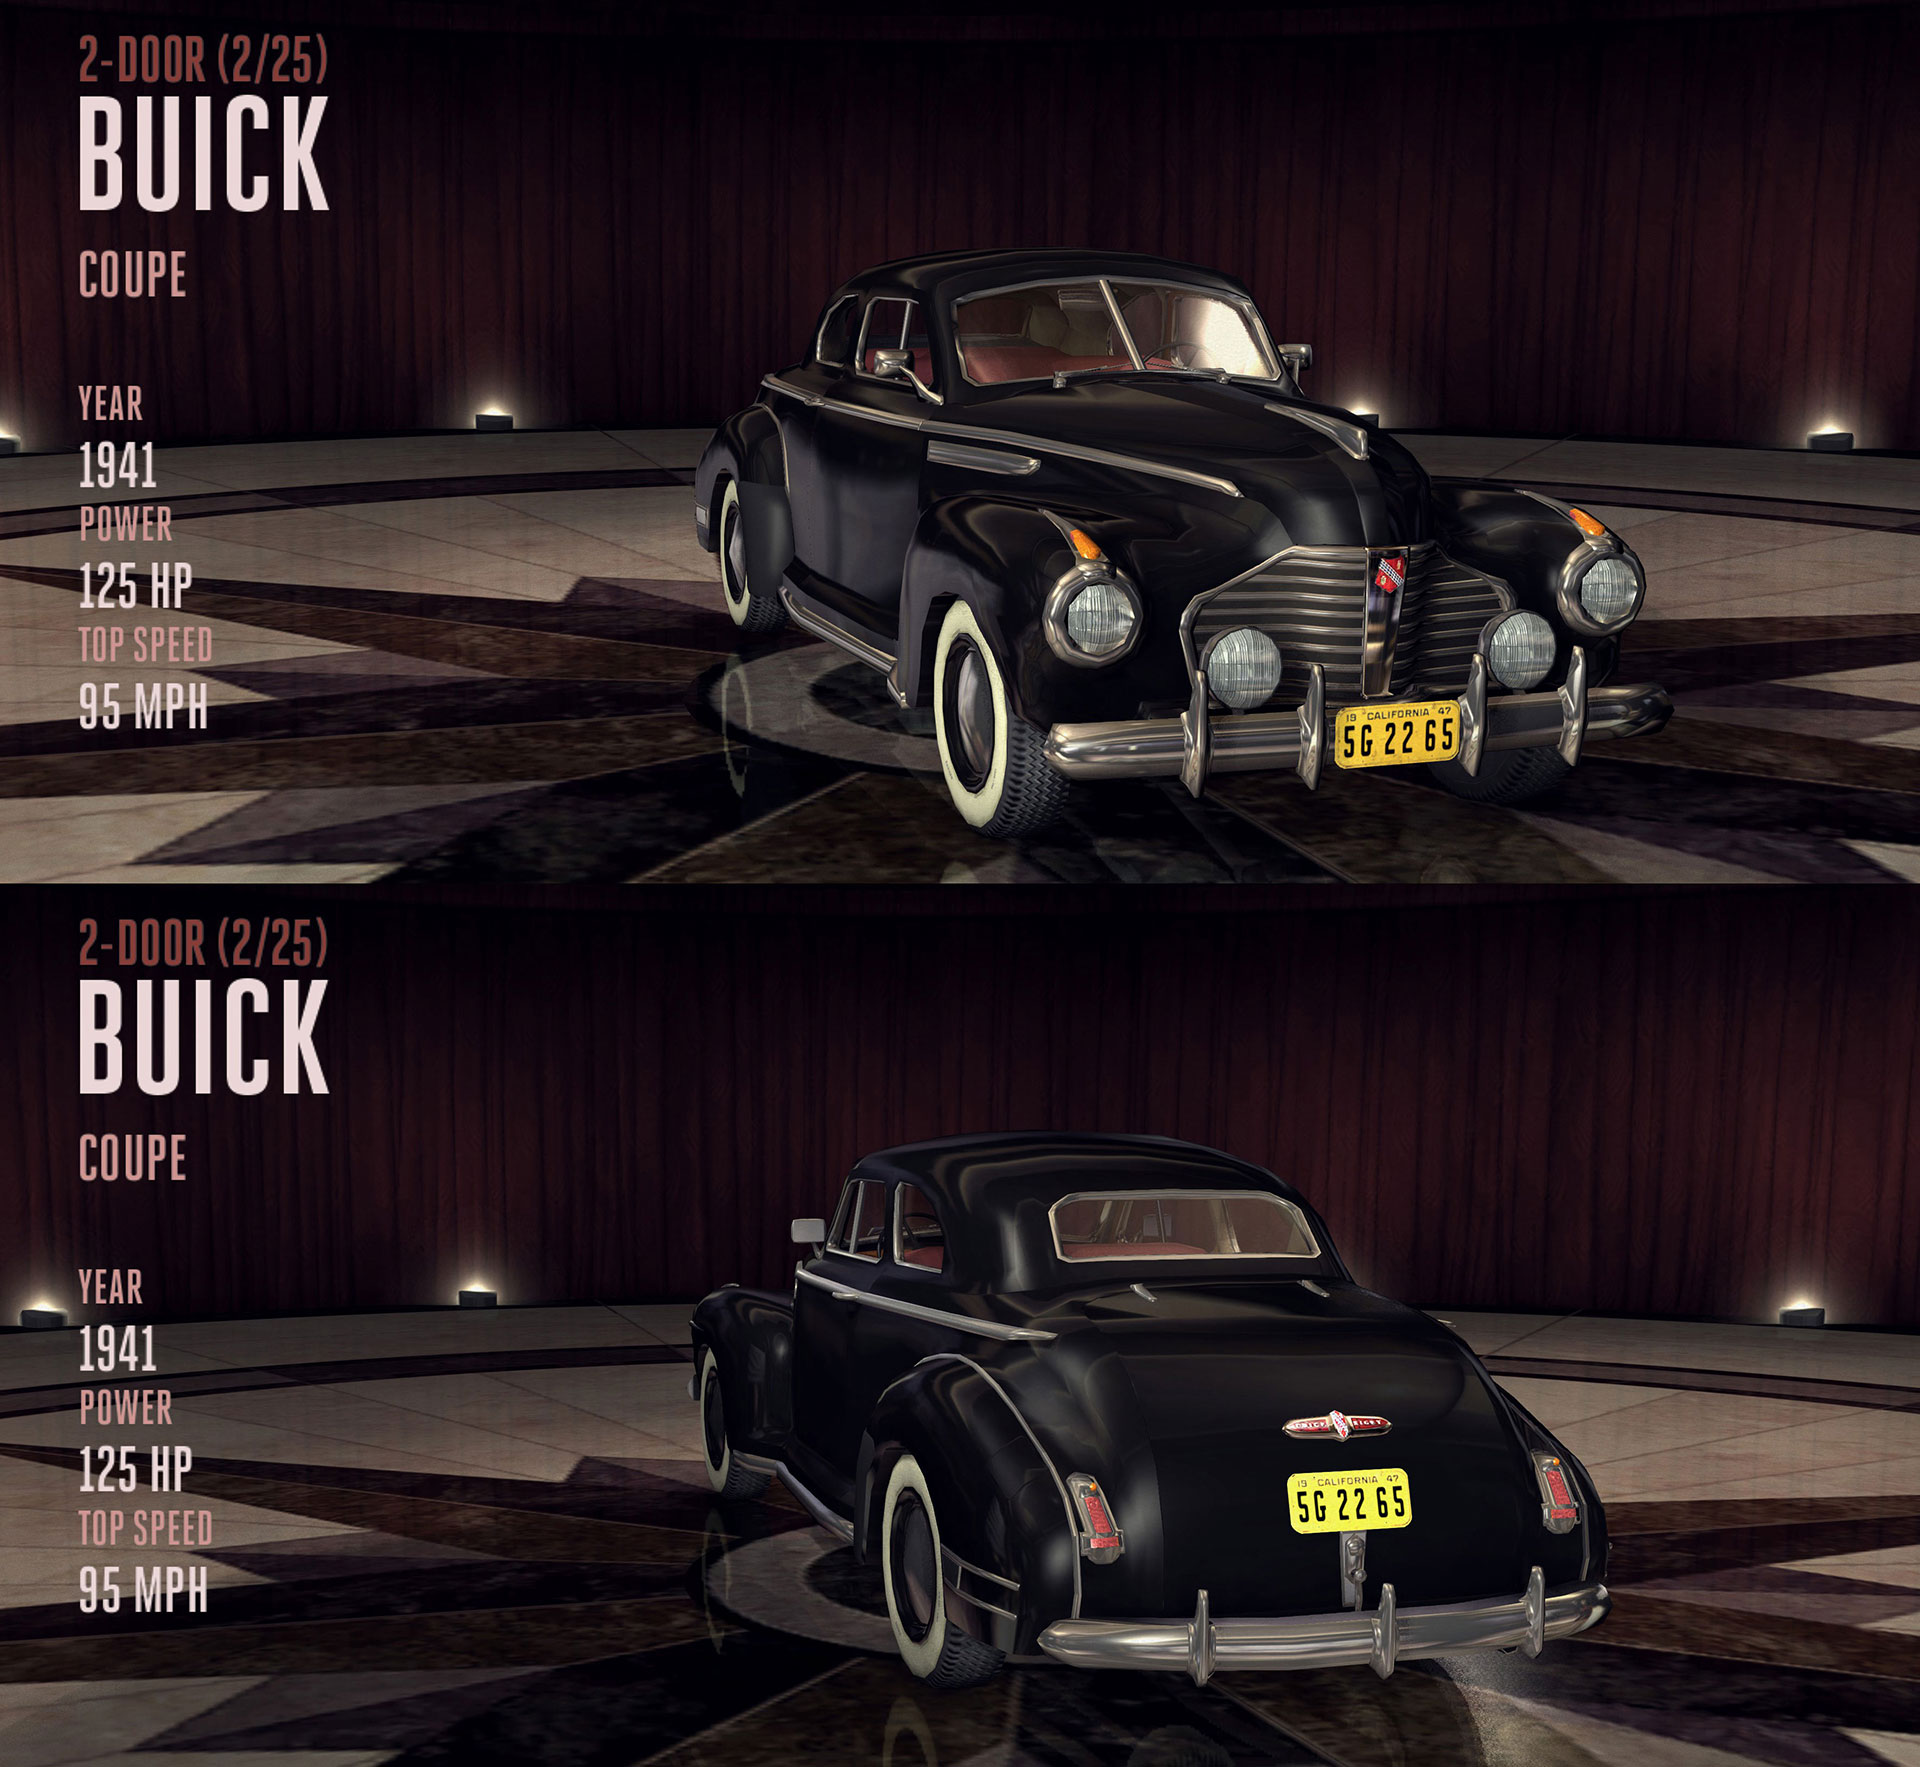 File:1941-buick-coupe.jpg